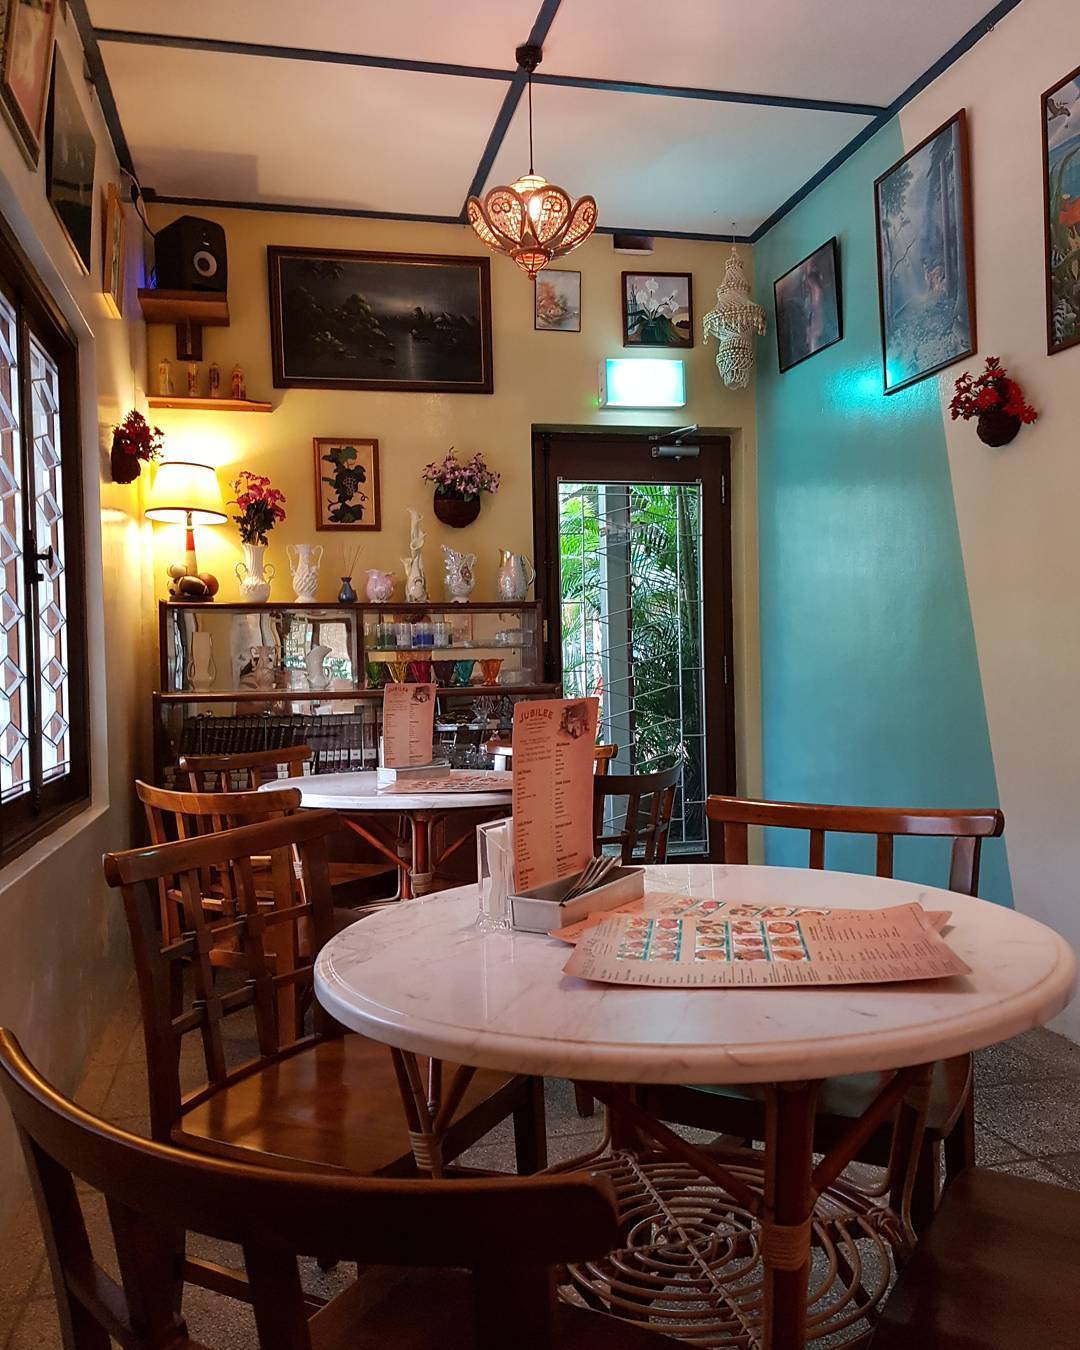 Rustic cafes - jubilee cafe